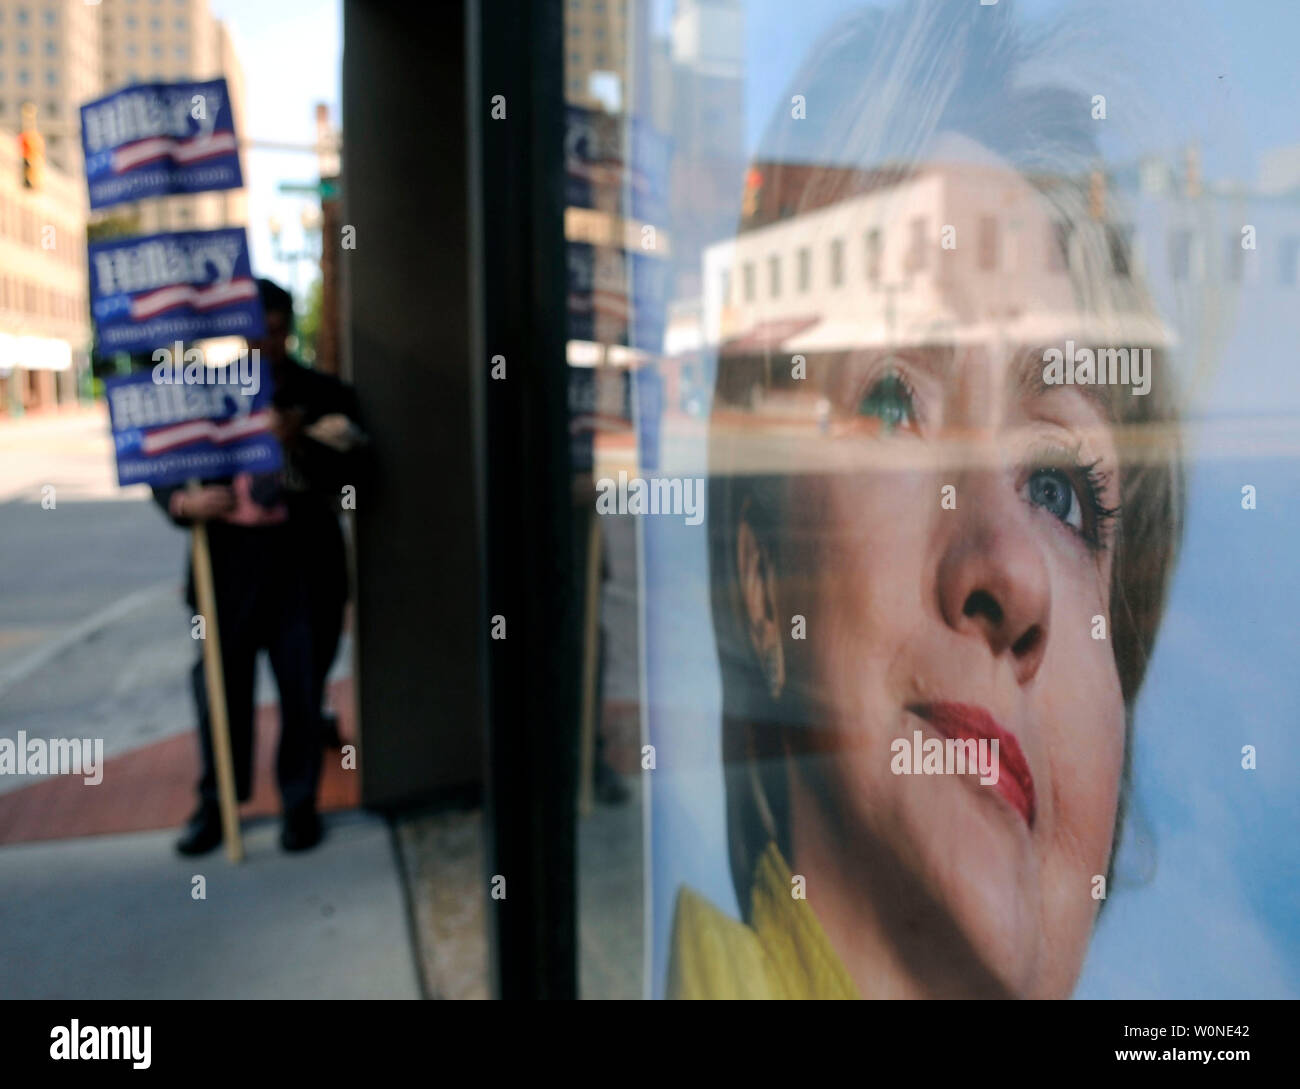 A man holds signs showing support for Democratic presidential candidate Sen. Hillary Clinton (D-NY) outside of the Clinton headquarters in Charleston, West Virginia on May 13, 2008. West Virginians head to the polls today as they vote in that states Presidential primaries. (UPI Photo/Kevin Dietsch) Stock Photo